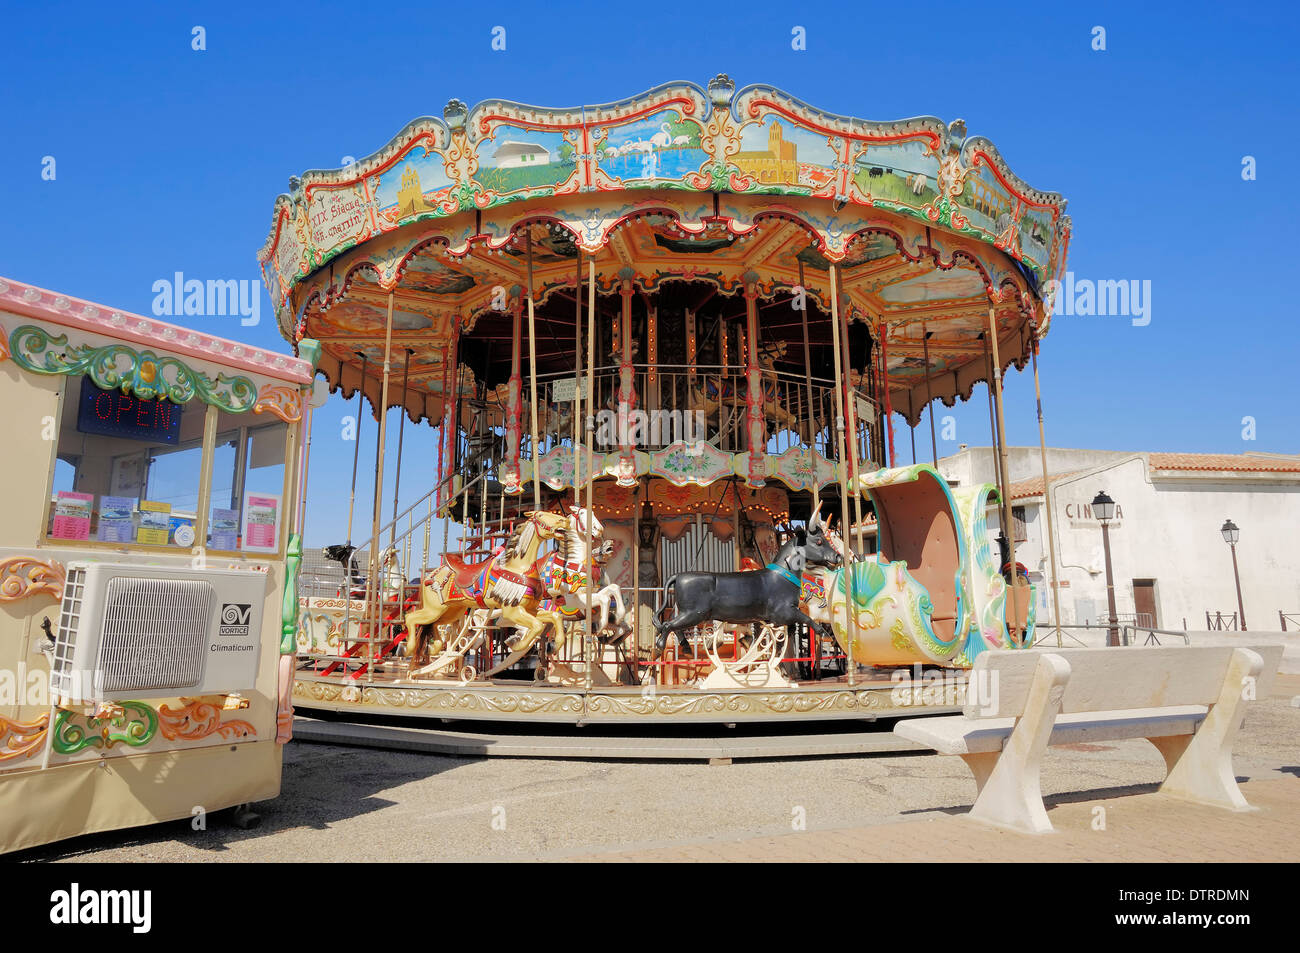 Carrousel les saintes maries de la mer camargue bouches - Office du tourisme saintes maries de la mer ...